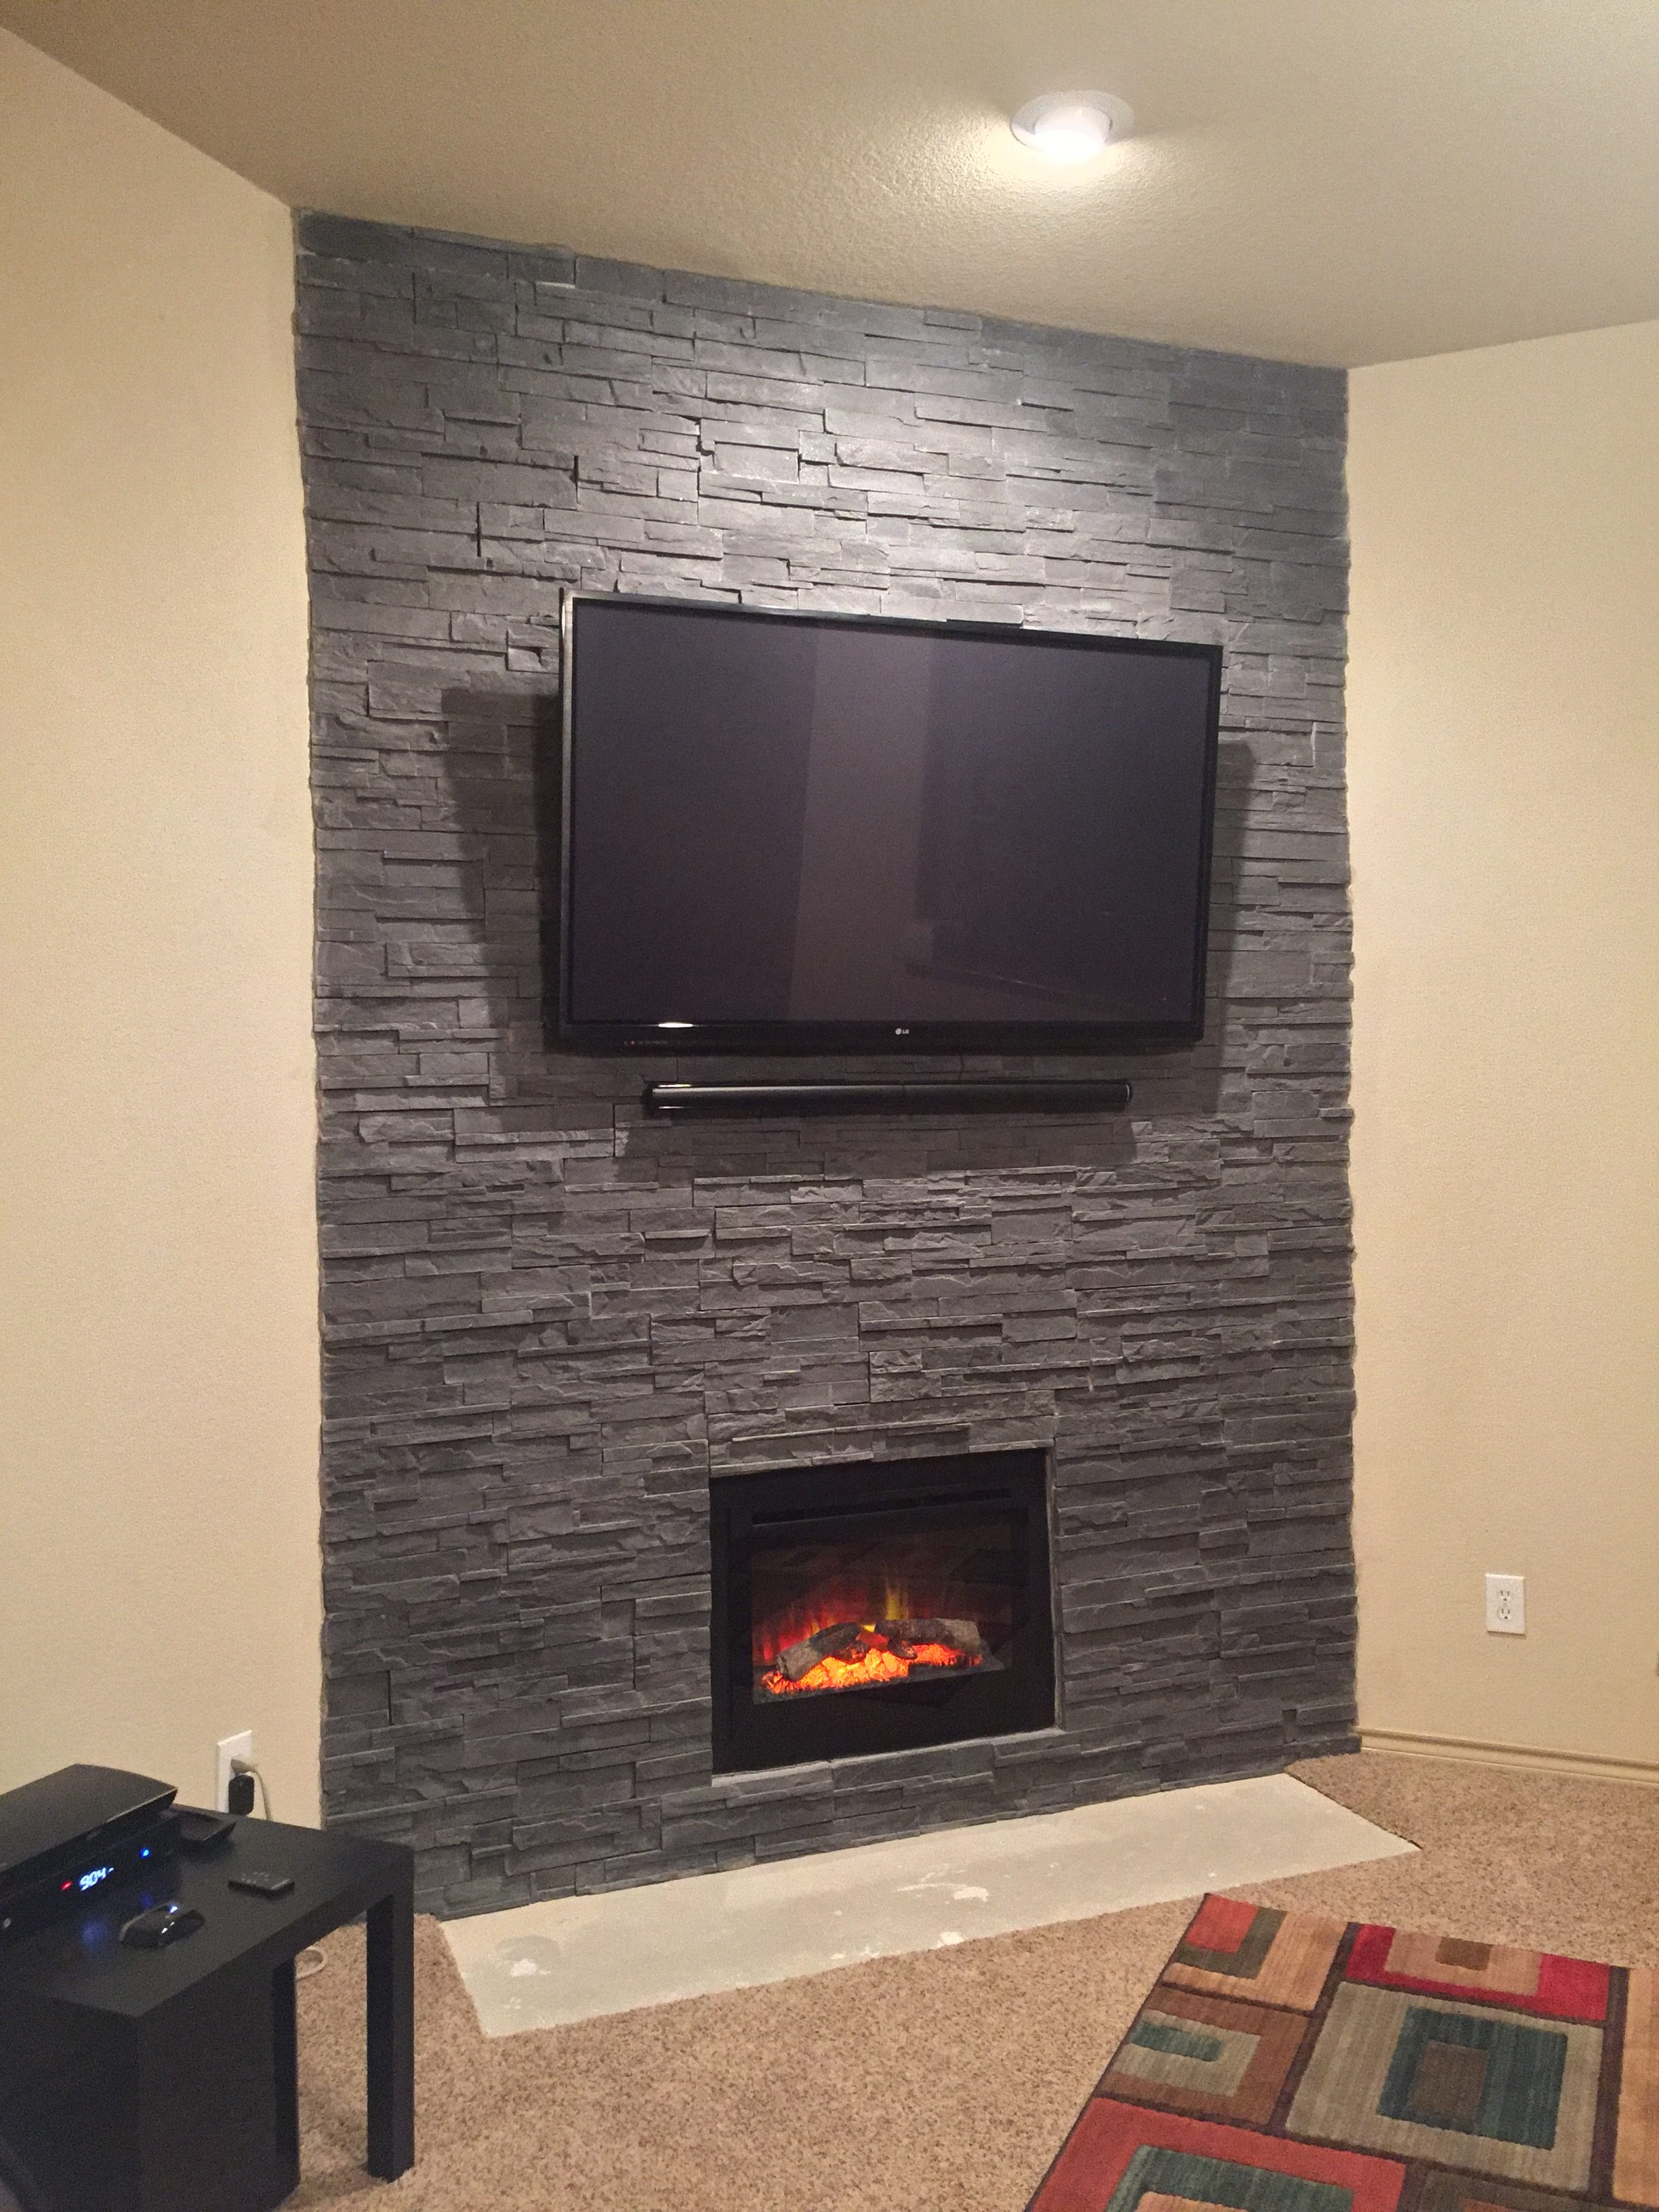 kitchens remodeling kitchen carts lowes a fireplace transformed with cultured stone: photos